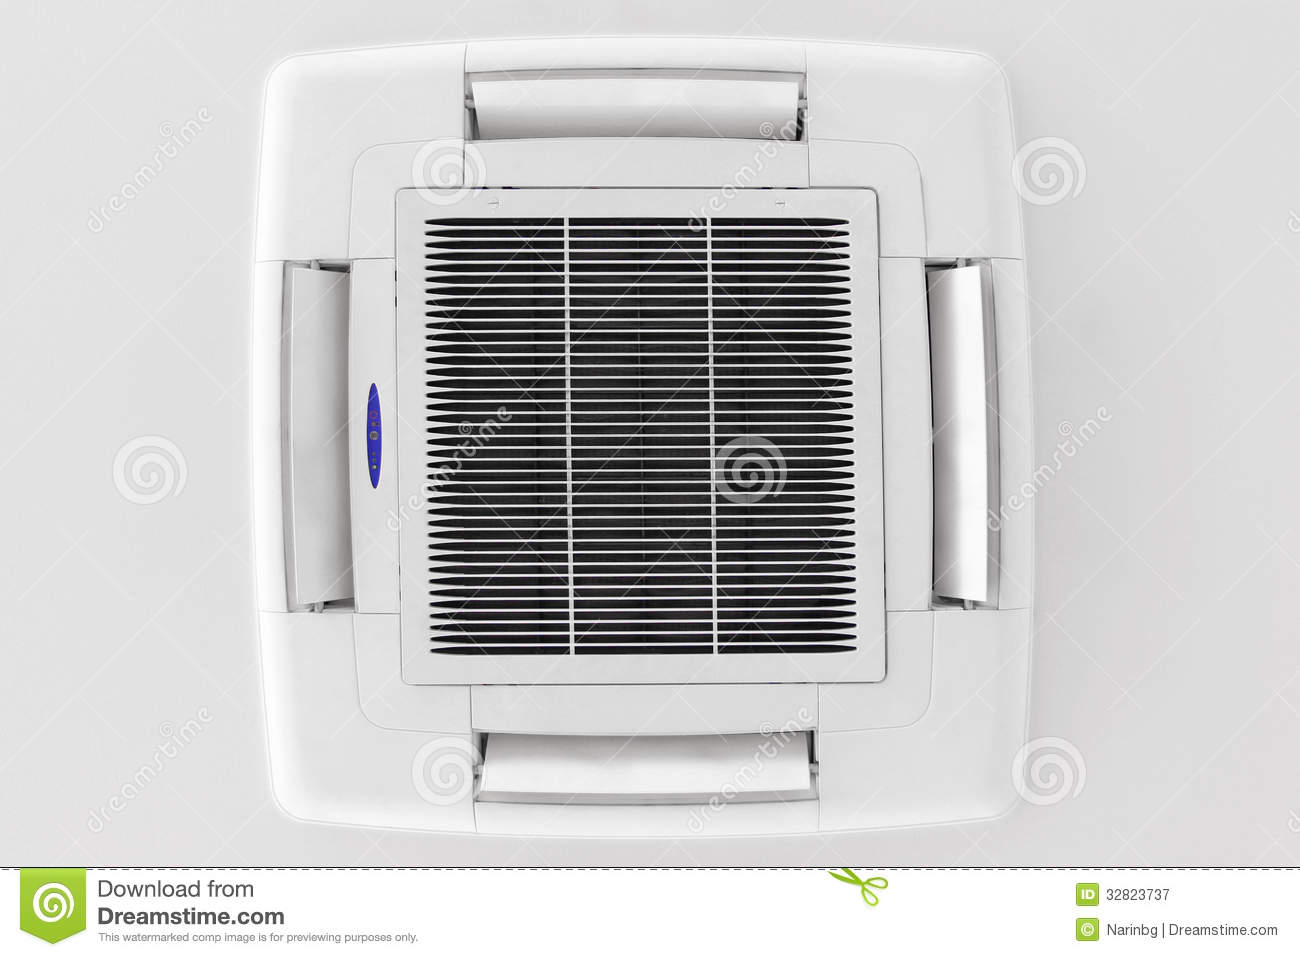 Air Conditioner Royalty Free Stock Photography Image: 32823737 #85A625